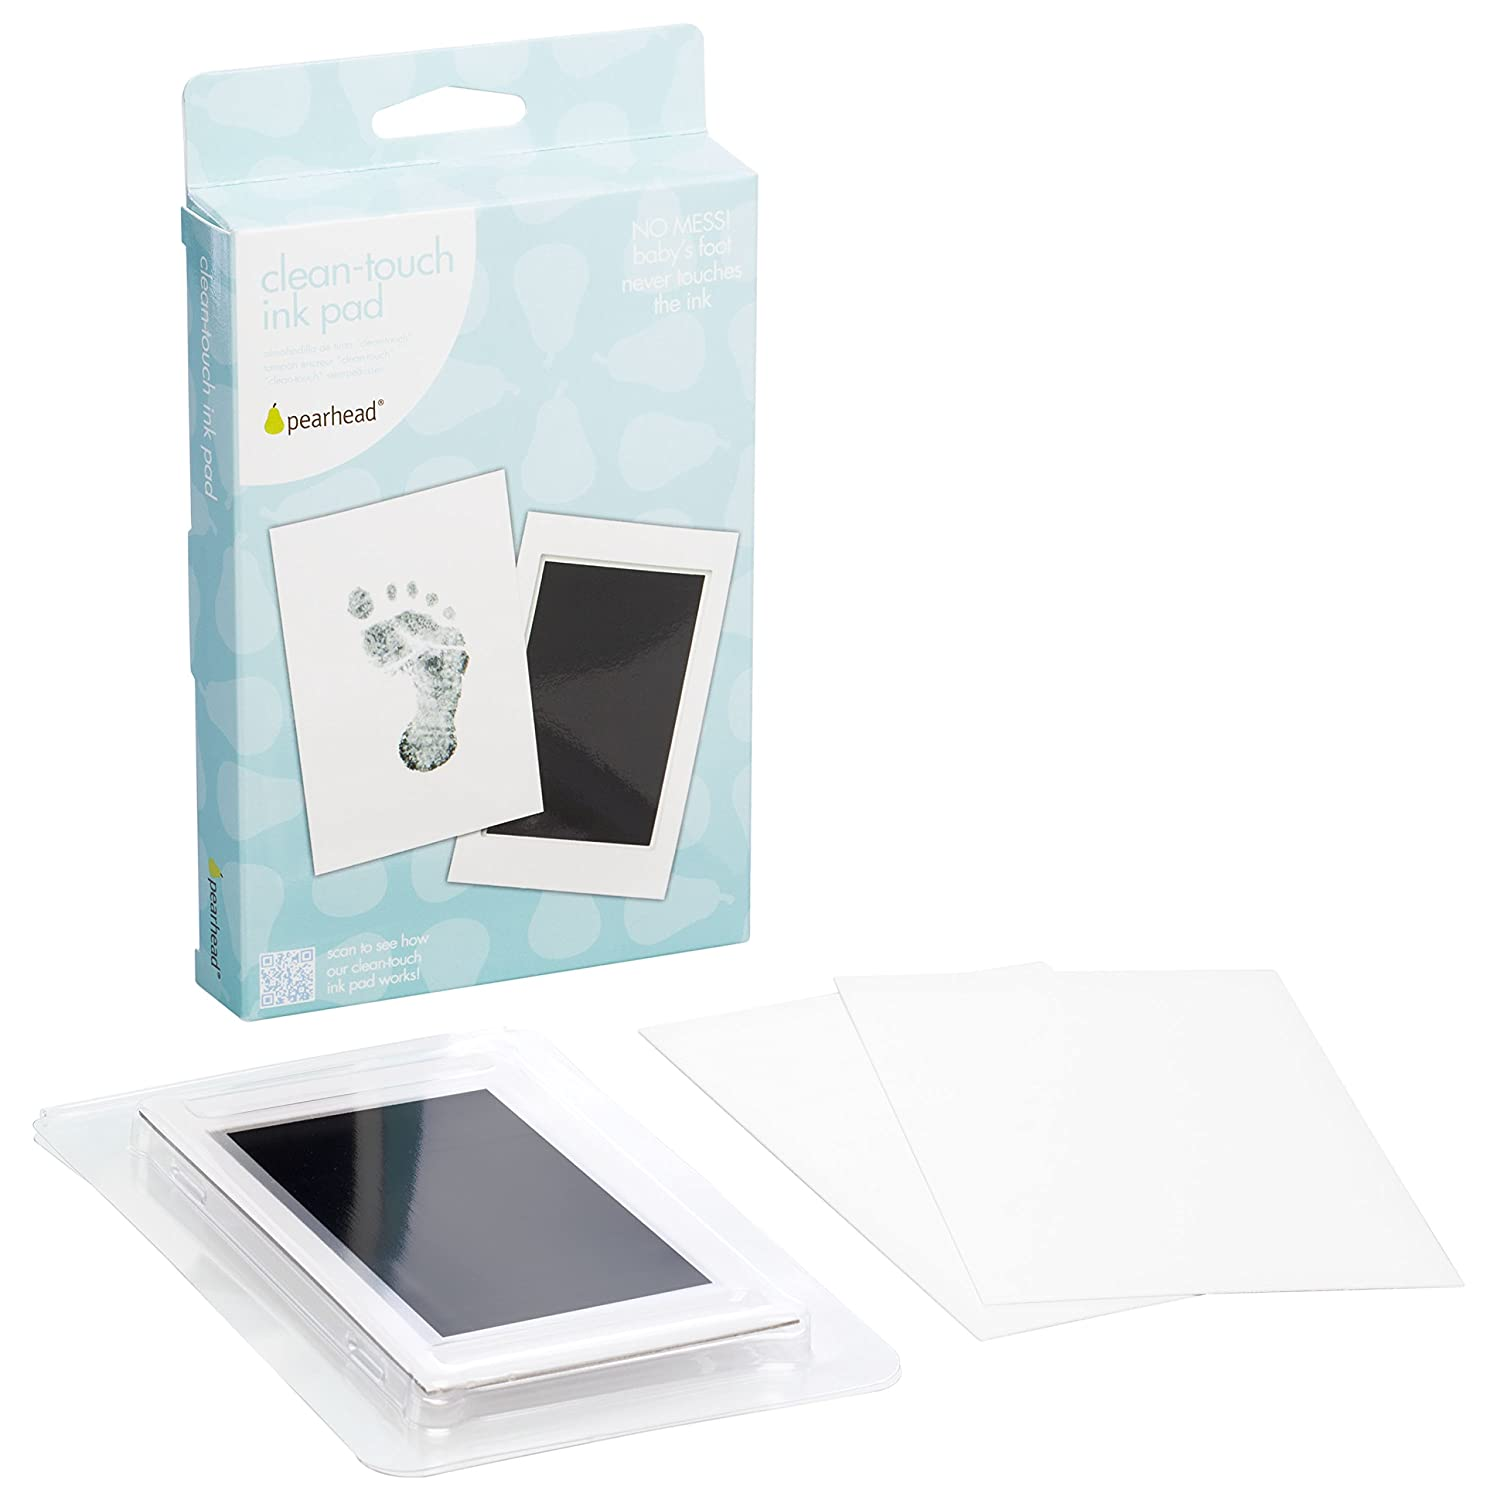 "Pearhead Newborn Baby Handprint or Footprint ""Clean-Touch"" Ink Pad, 2 Uses, Black 00007"